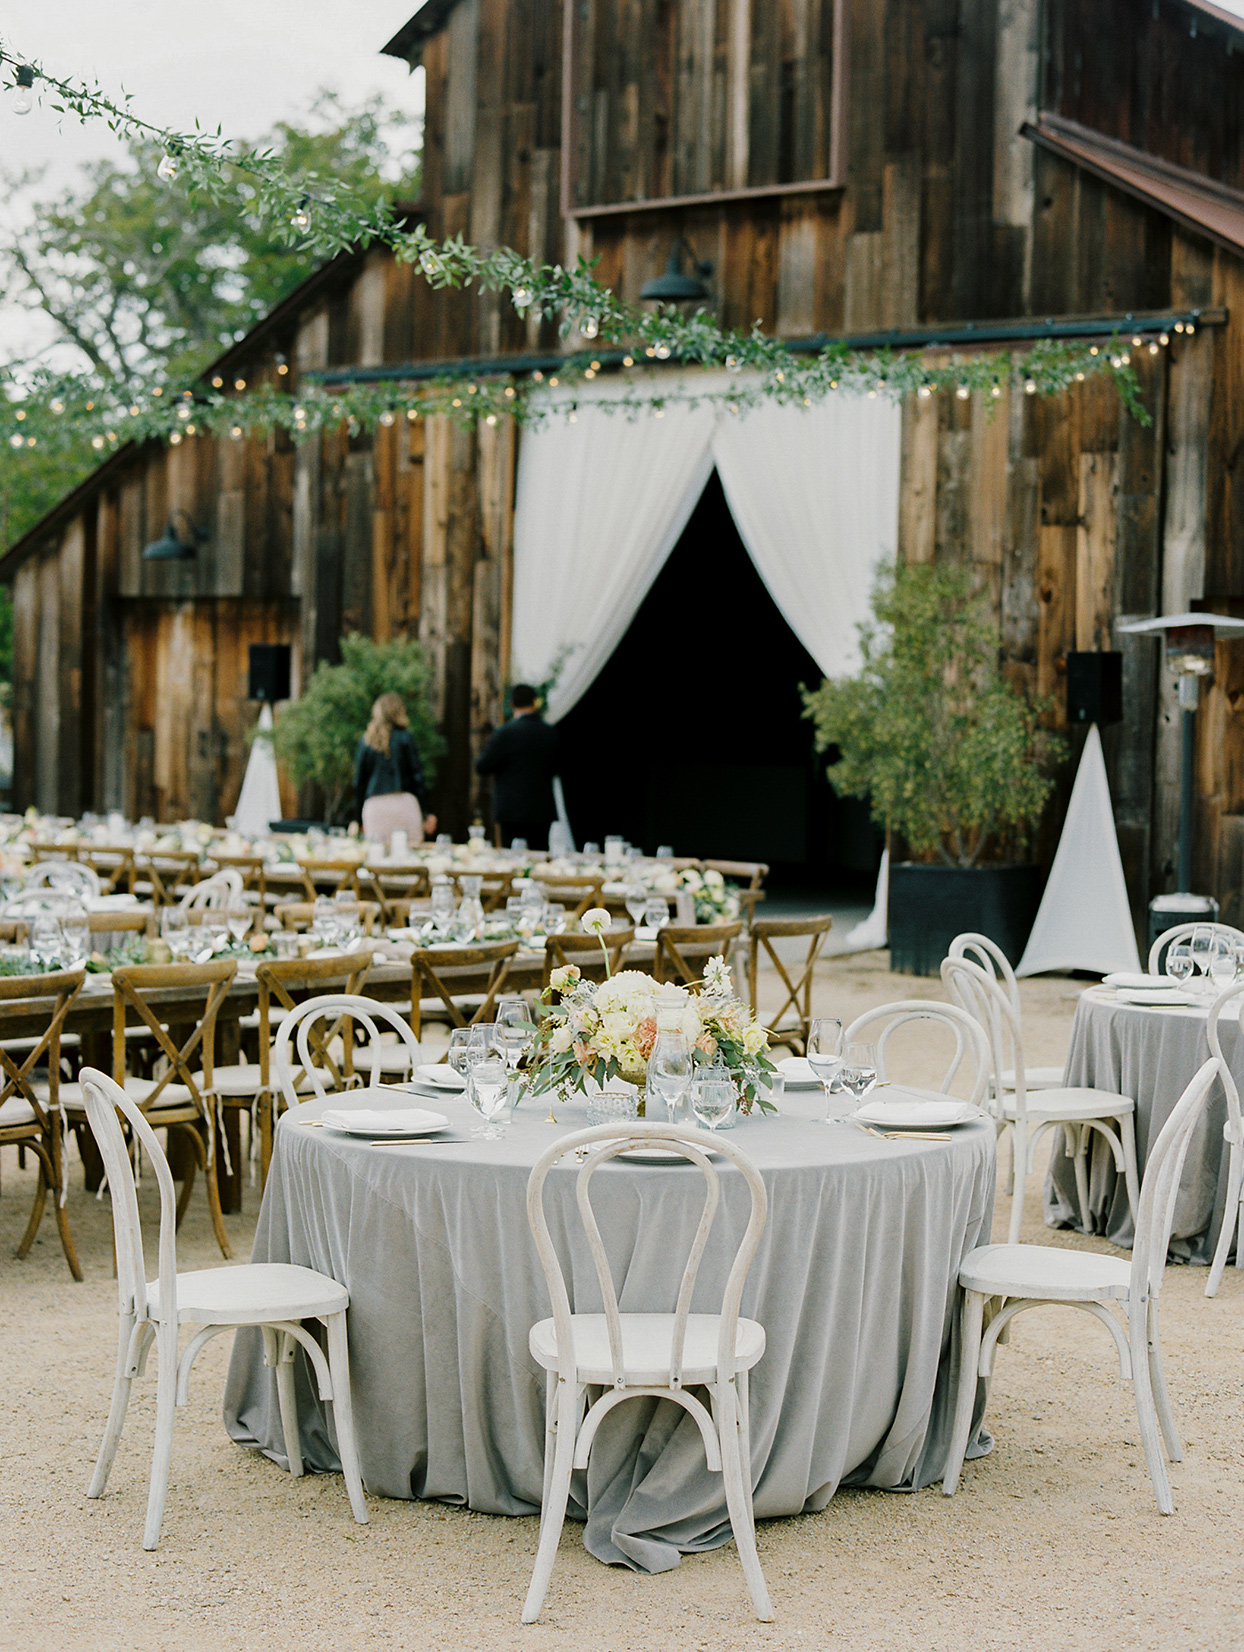 mika steve wedding reception outside rustic barn